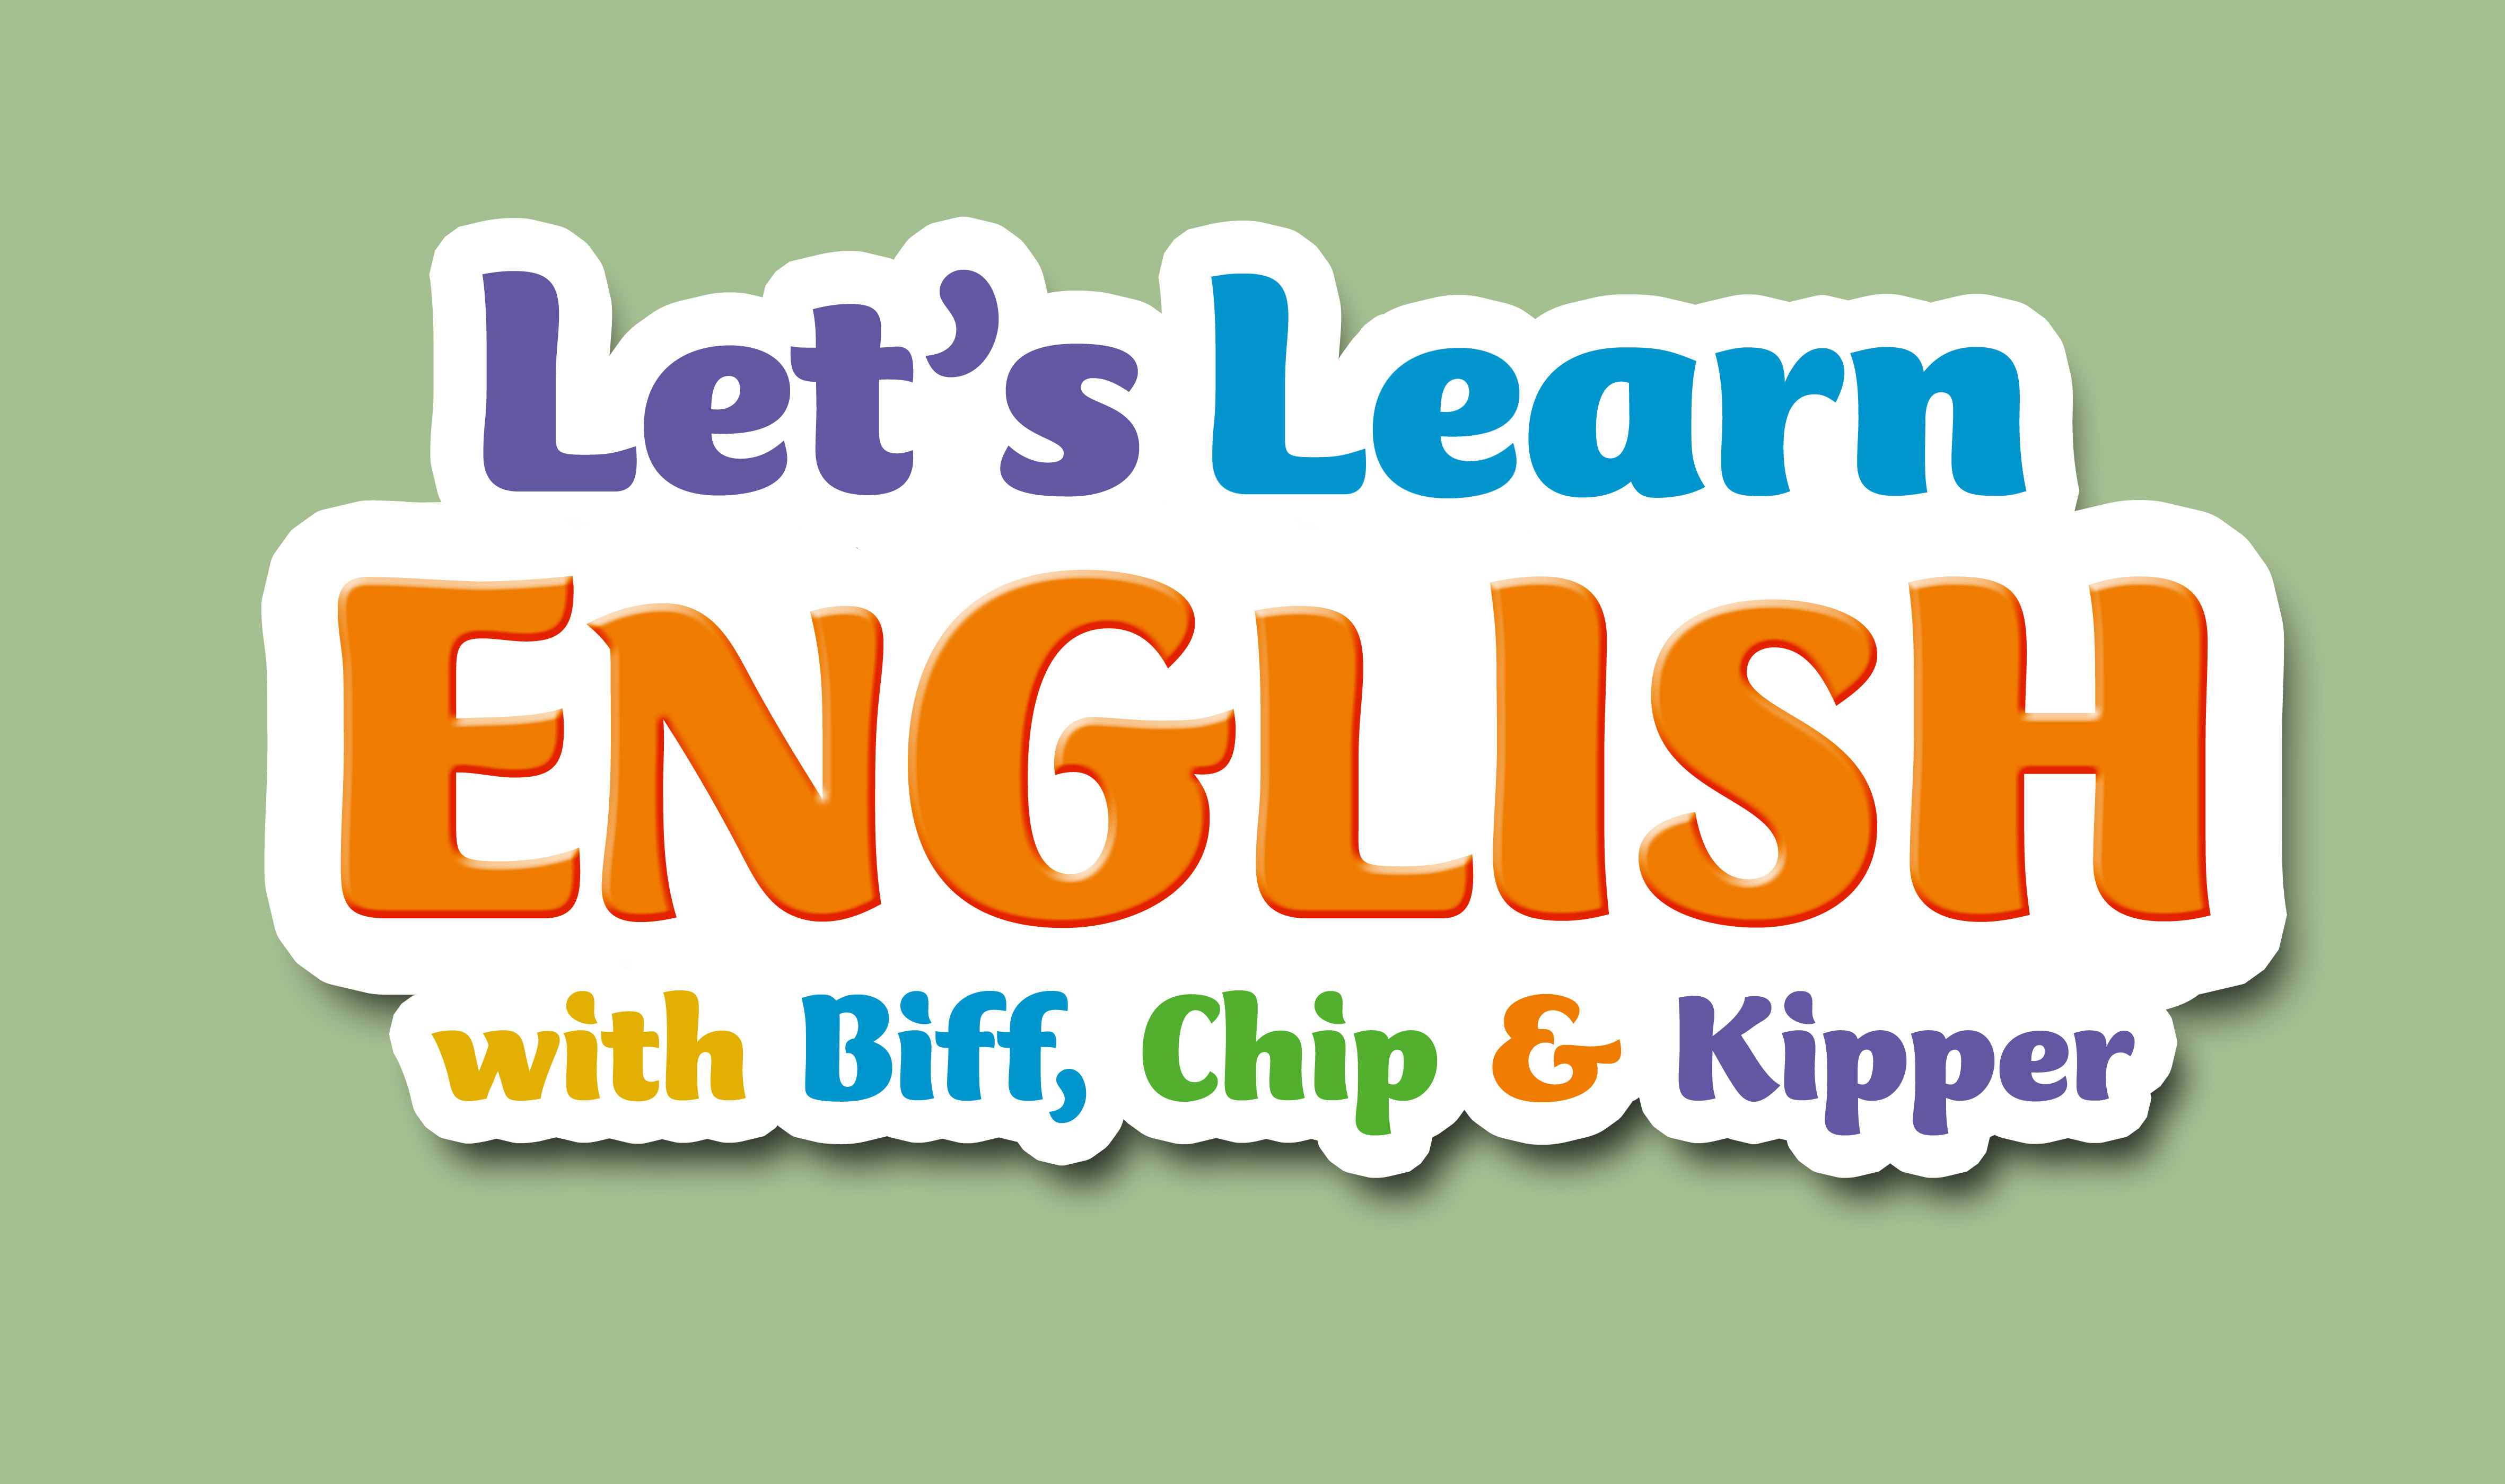 NEWS: Let's learn English with Biff, Chip & Kipper | GamingBoulevard